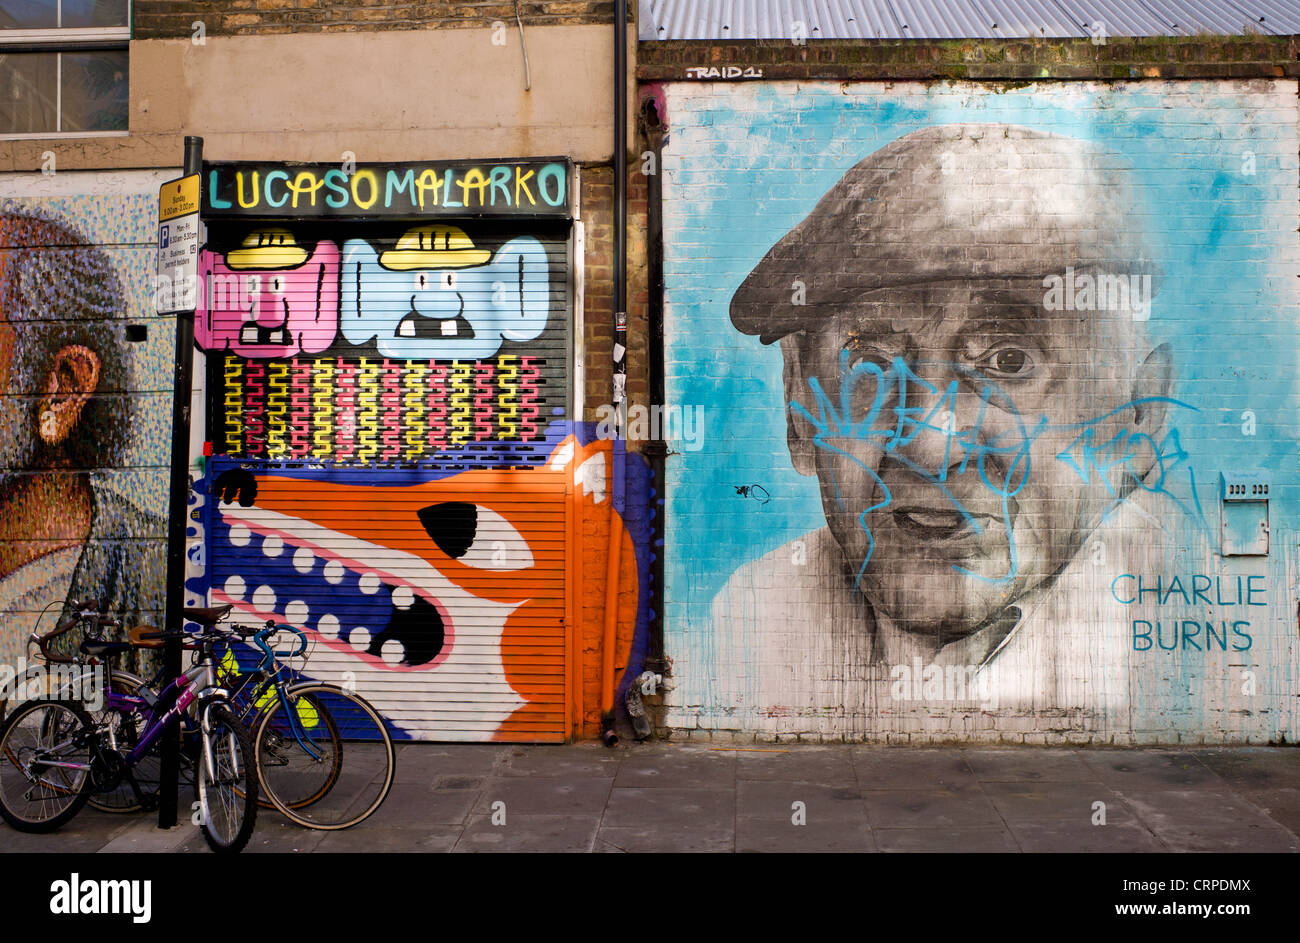 Street art in Bacon Street in the East End of London. - Stock Image